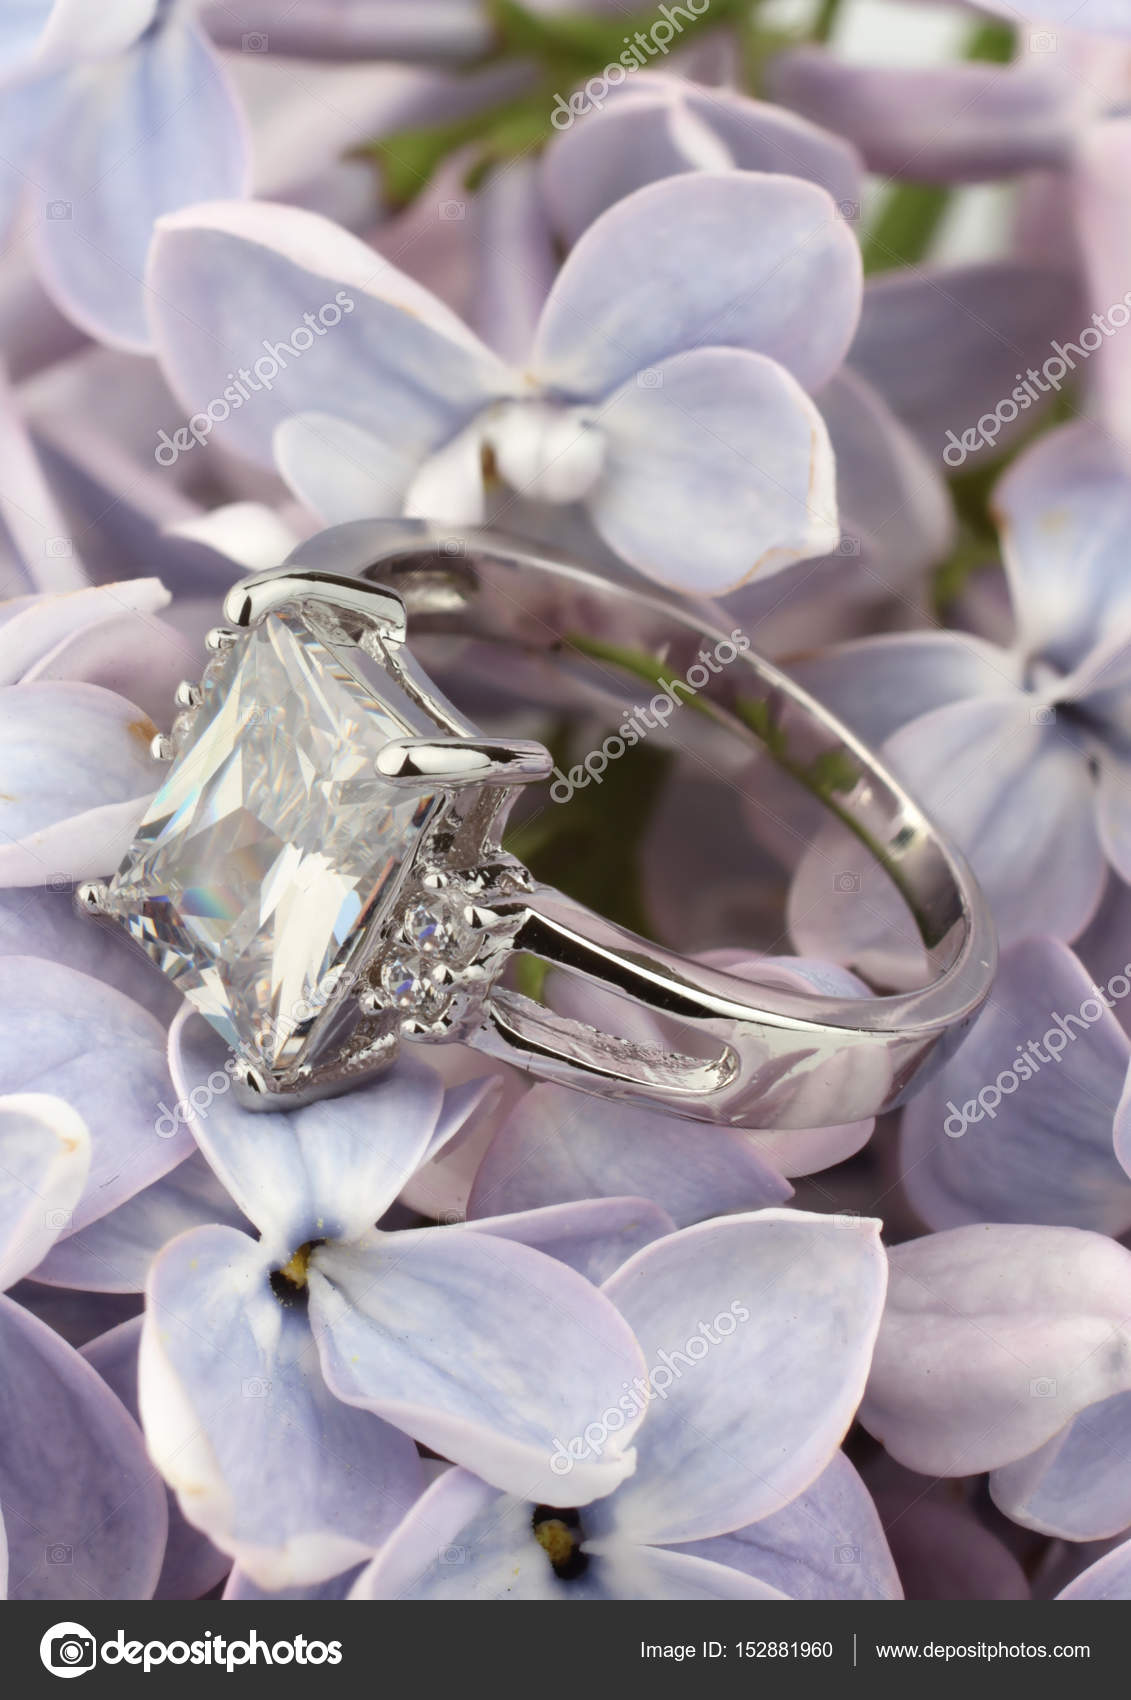 ring engagement popsugar inspiration sex big love diamond